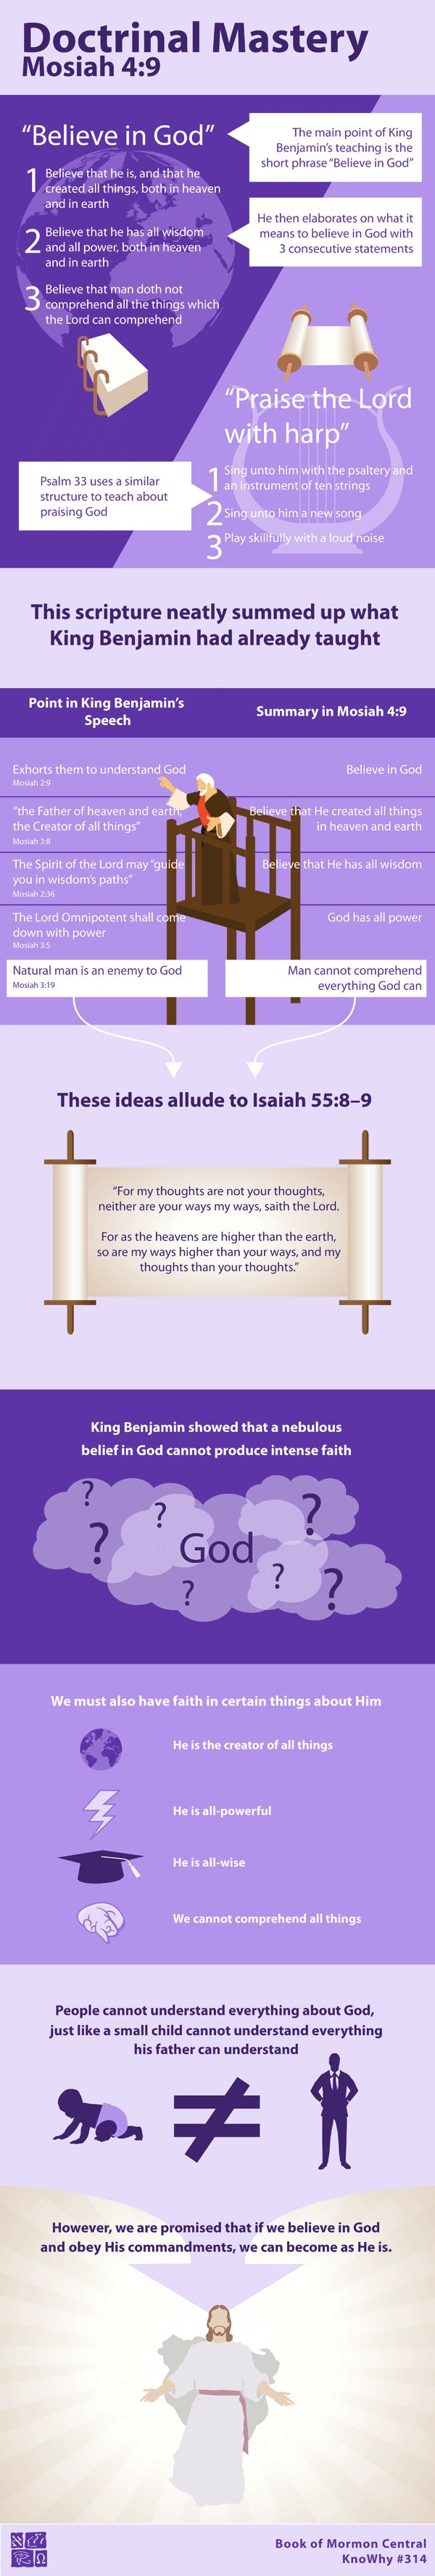 Doctrinal Mastery Mosiah 4:9 Infographic by Book of Mormon Central